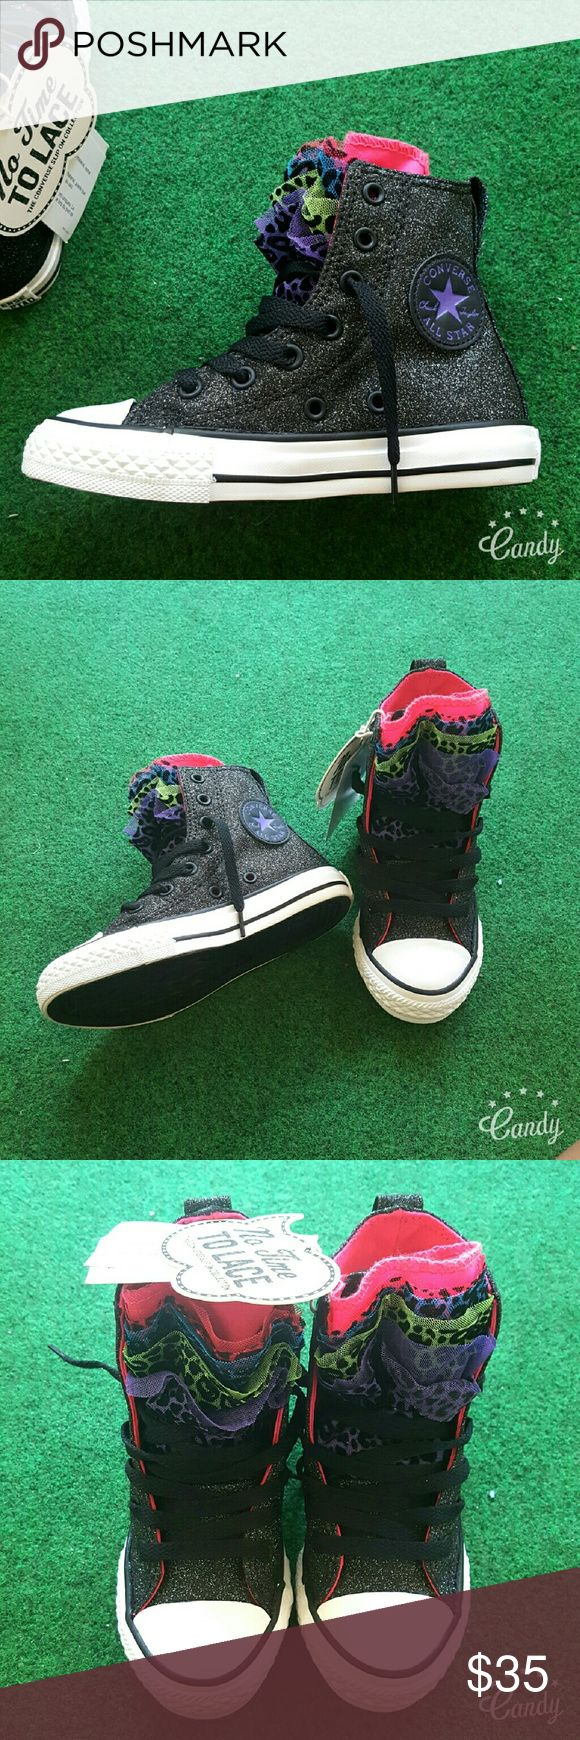 Walking dead converse shoes for sale - Converse Party Hi Tutu Sneakers Boutique